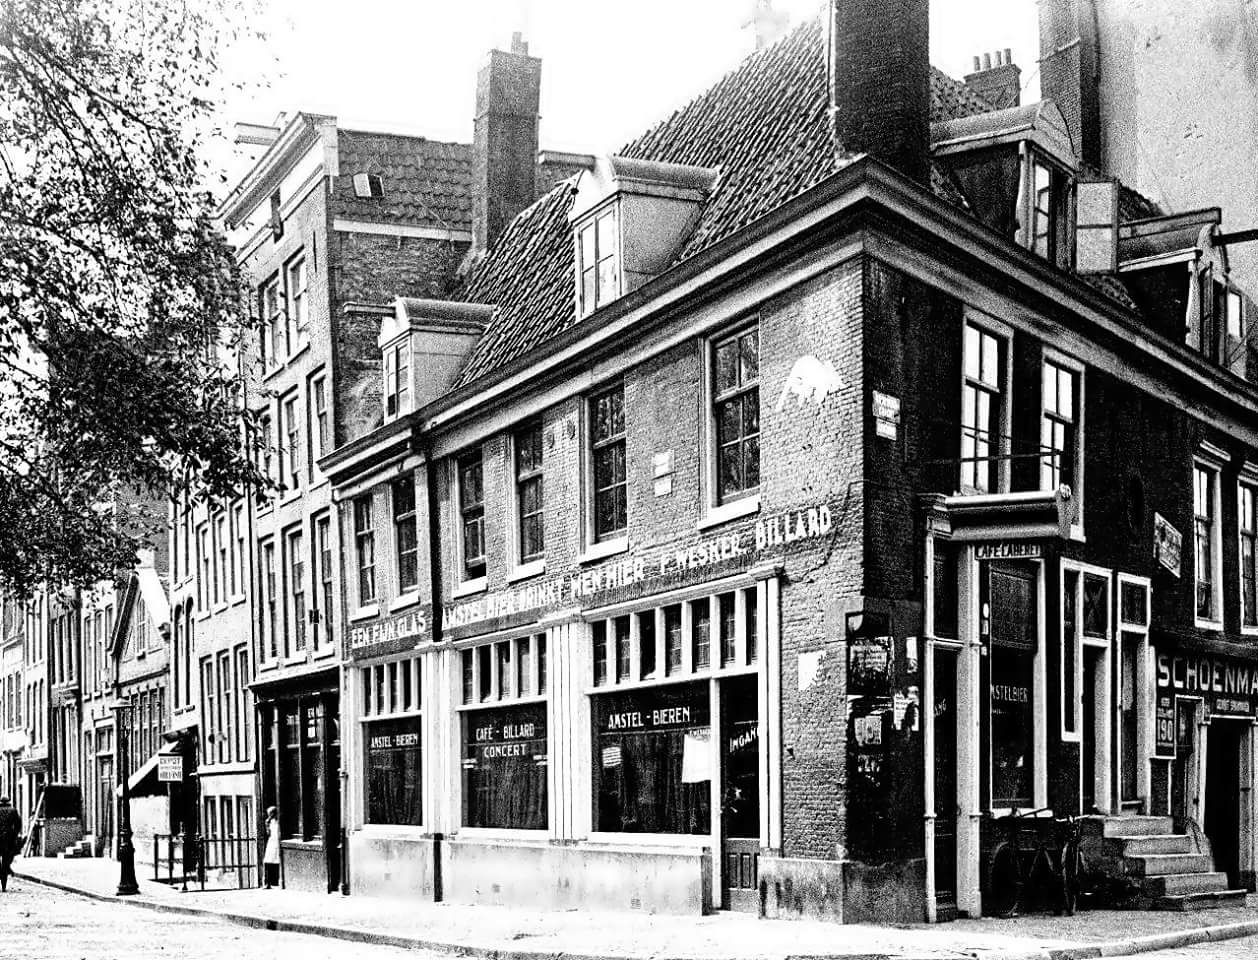 1948 A View Of Cafe F Wesker At The Corner Of Lindengracht And